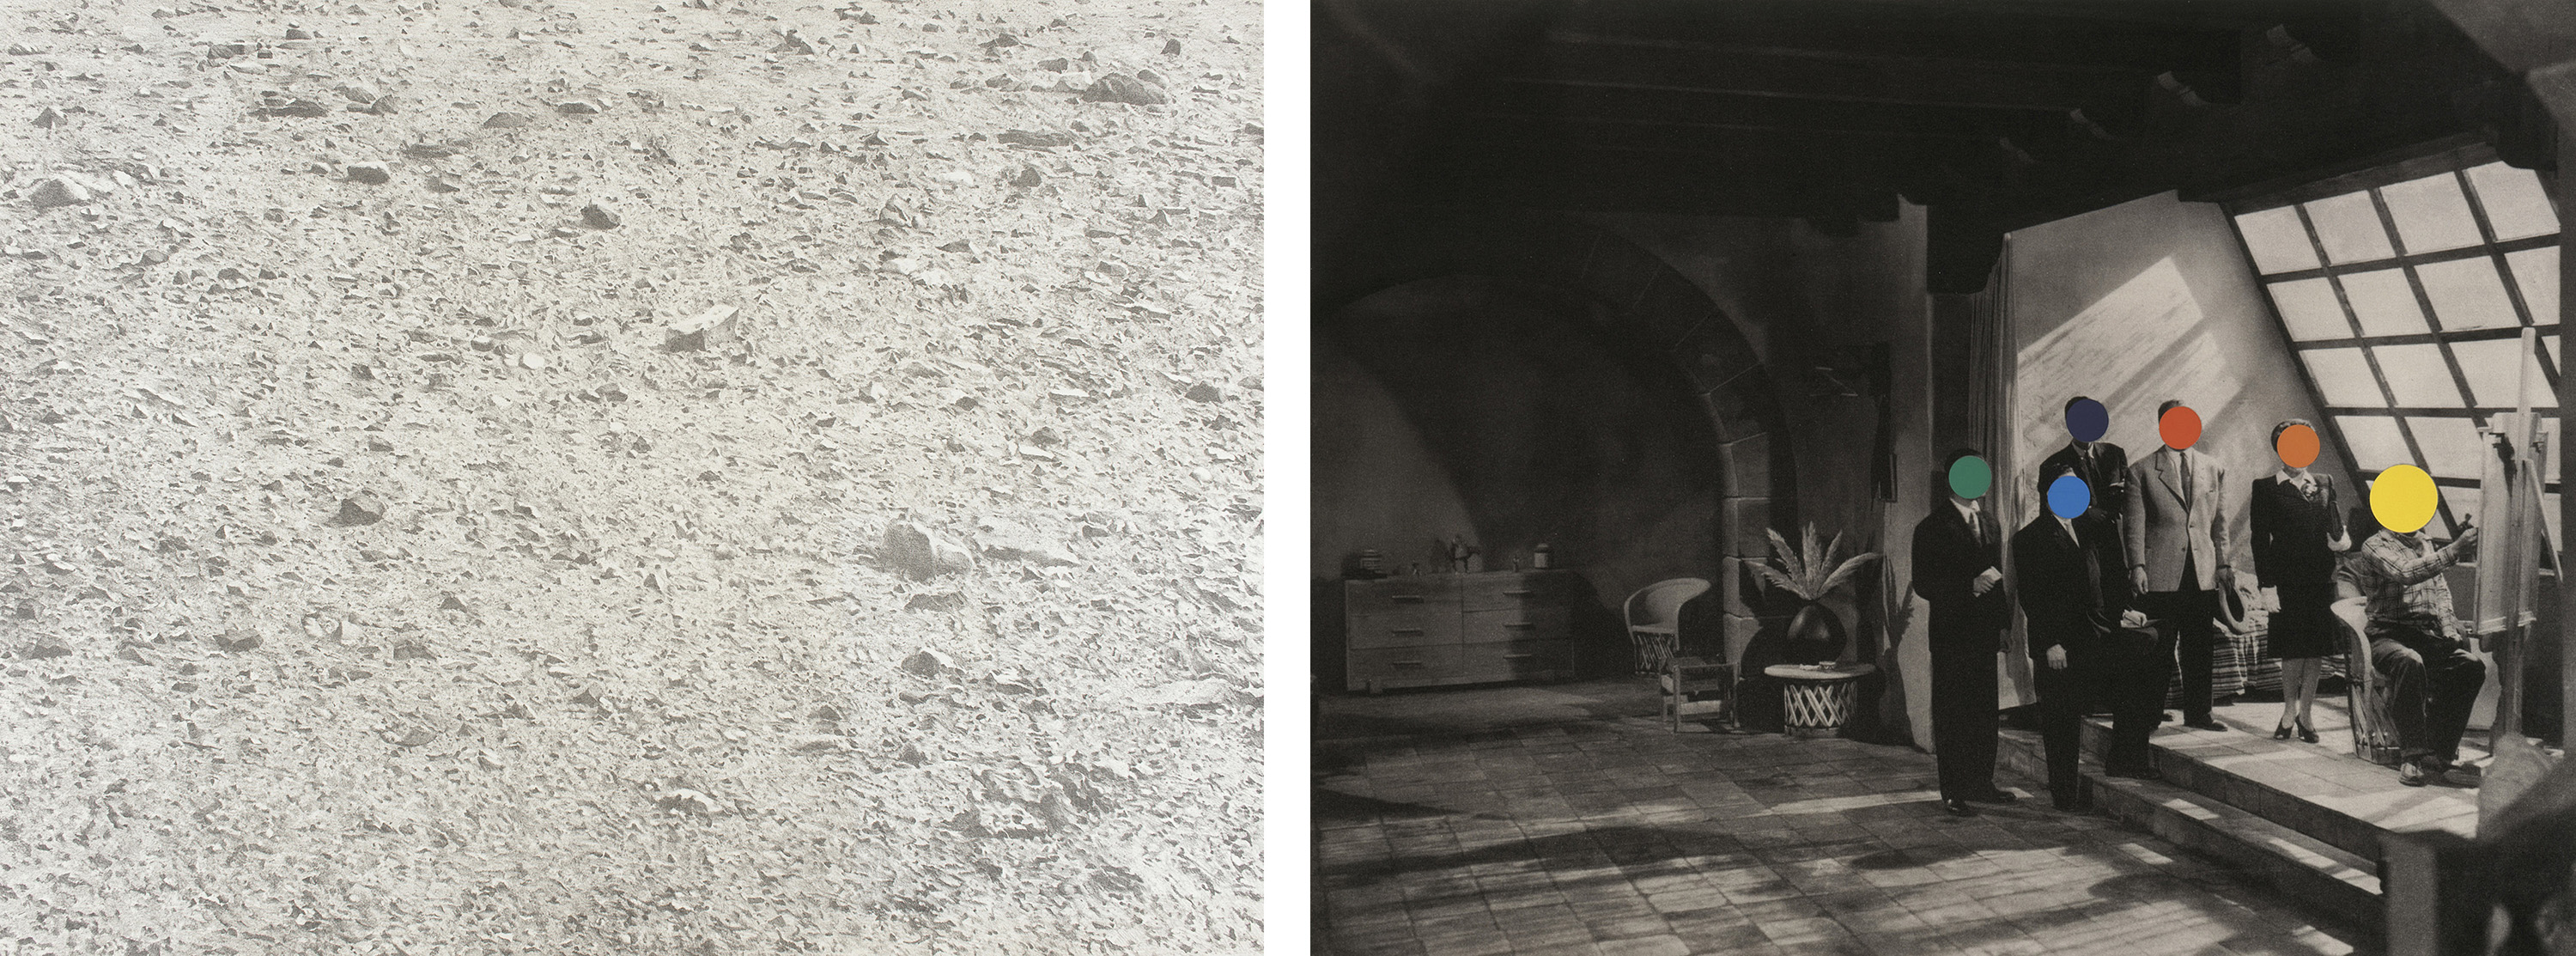 Left: Vija Celmins, Untitled (Desert), 1971, Los Angeles County Museum of Art, gift of Iris and Allen Mink, © Vija Celmins, photo © Museum Associates/LACMA; Right: John Baldessari, Studio, 1988, Los Angeles County Museum of Art, Cirrus Editions Archive, purchased with funds provided by the Graphic Arts Council, and gift of Cirrus Editions, © Estate of John Baldessari, digital image © Museum Associates/LACMA